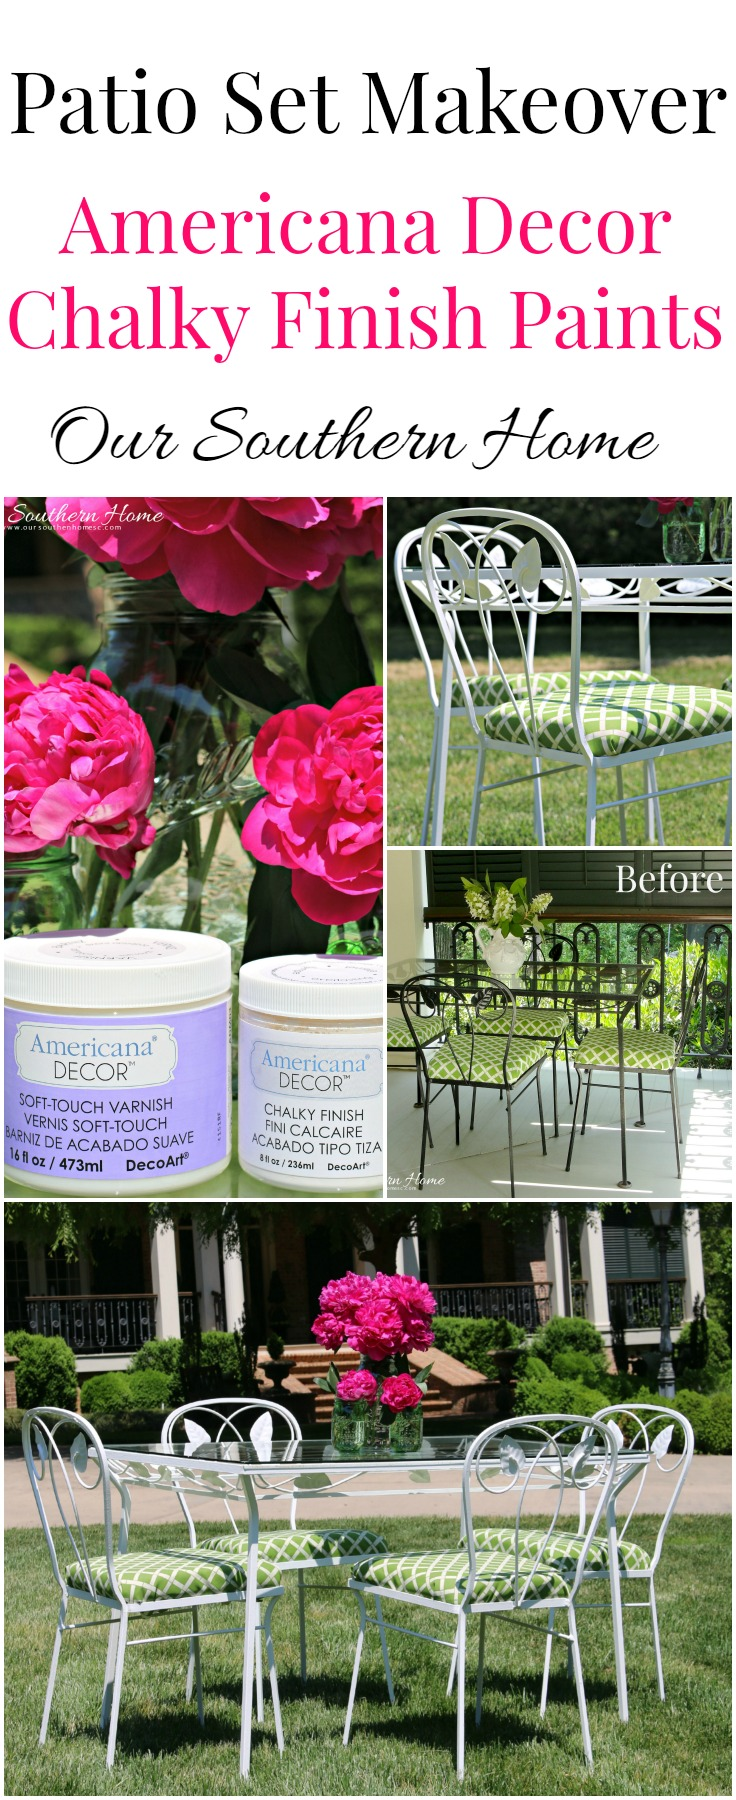 Outdoor furniture gets a makeover with Americana Decor Chalky Finish paints via Our Southern Home. #sp #chalkyfinish #decorartprojects